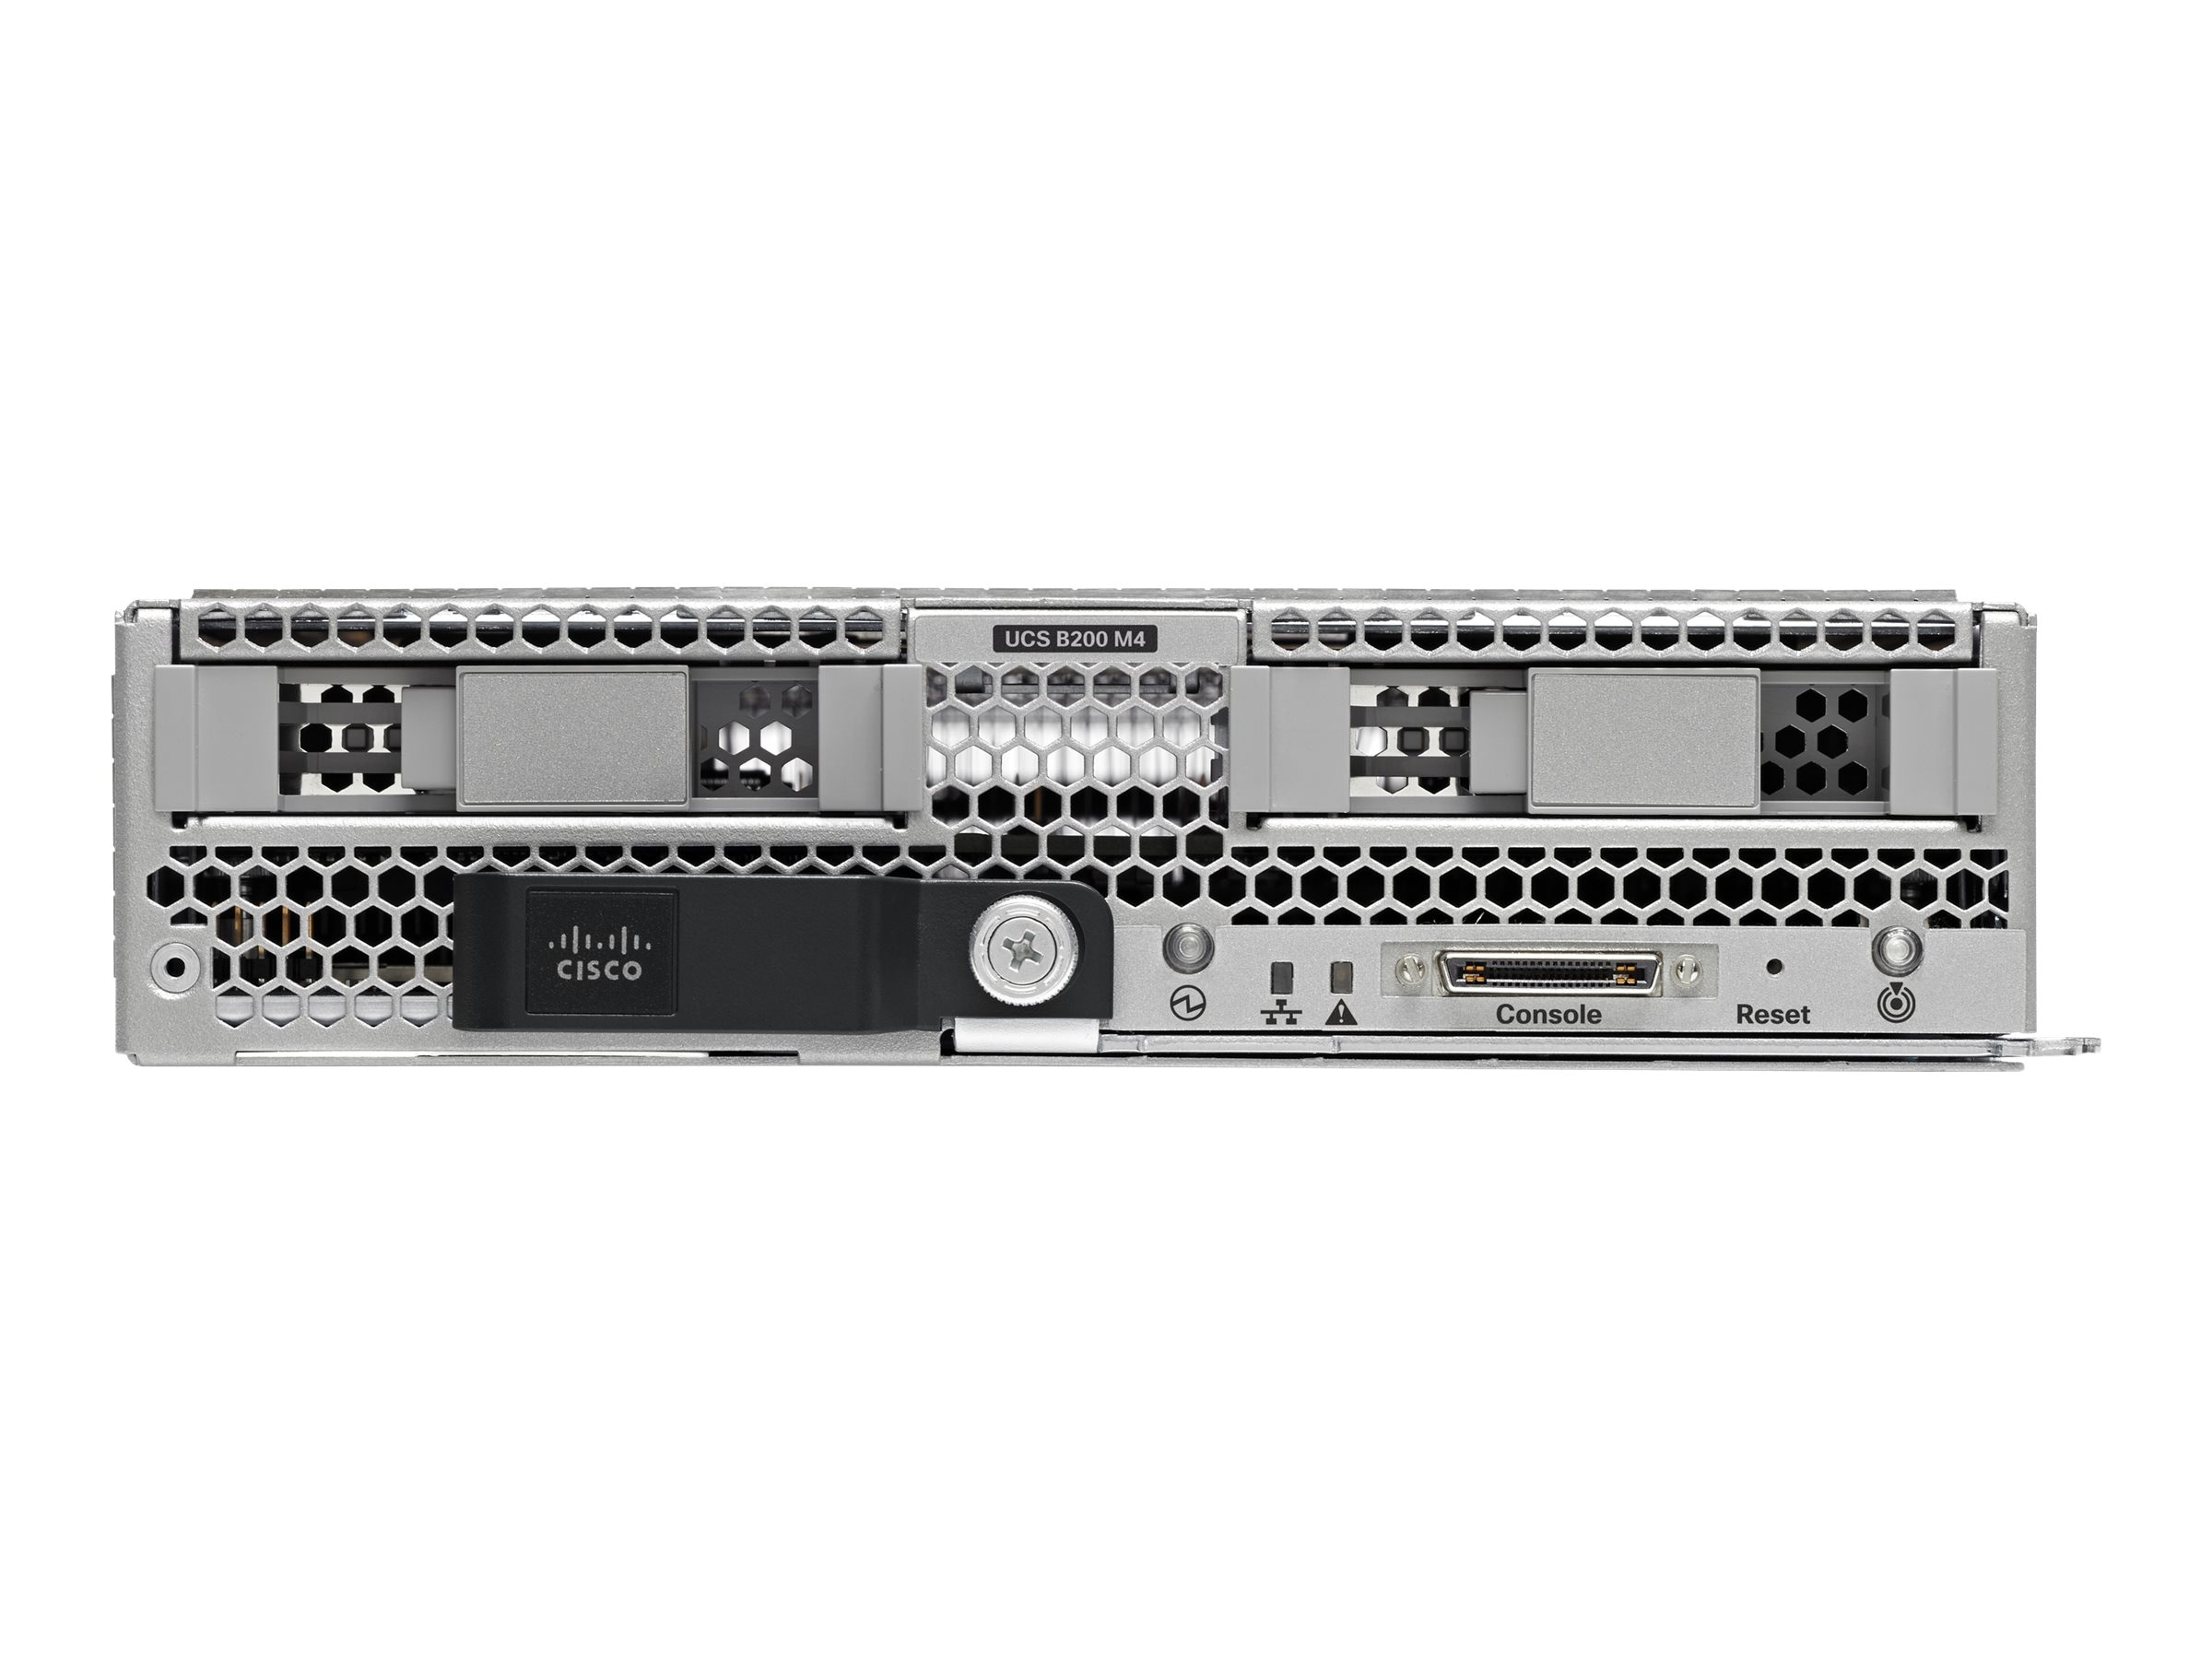 Cisco Not Sold Standalone B200 M4 Adv3 (2x)E5-2650 v4 256GB VIC1340